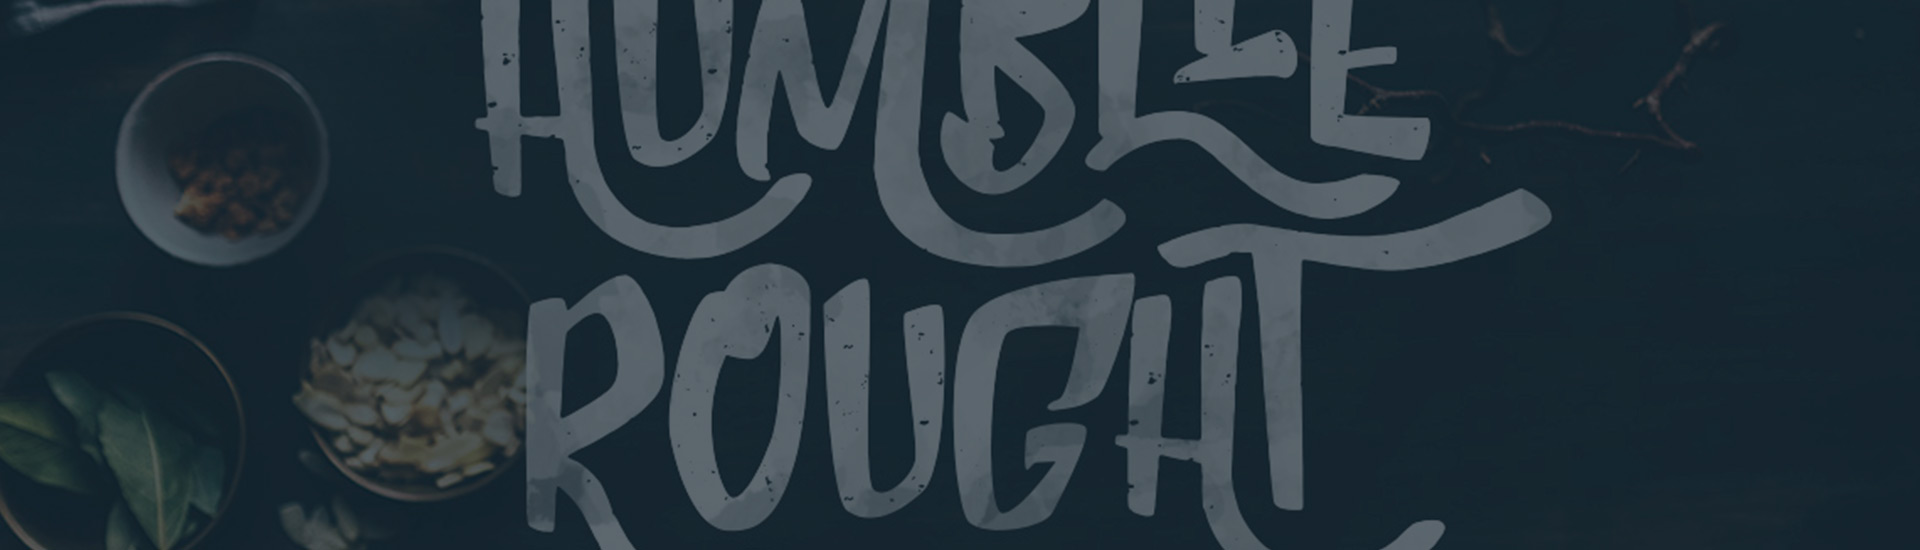 Font Free – Humblle Rought